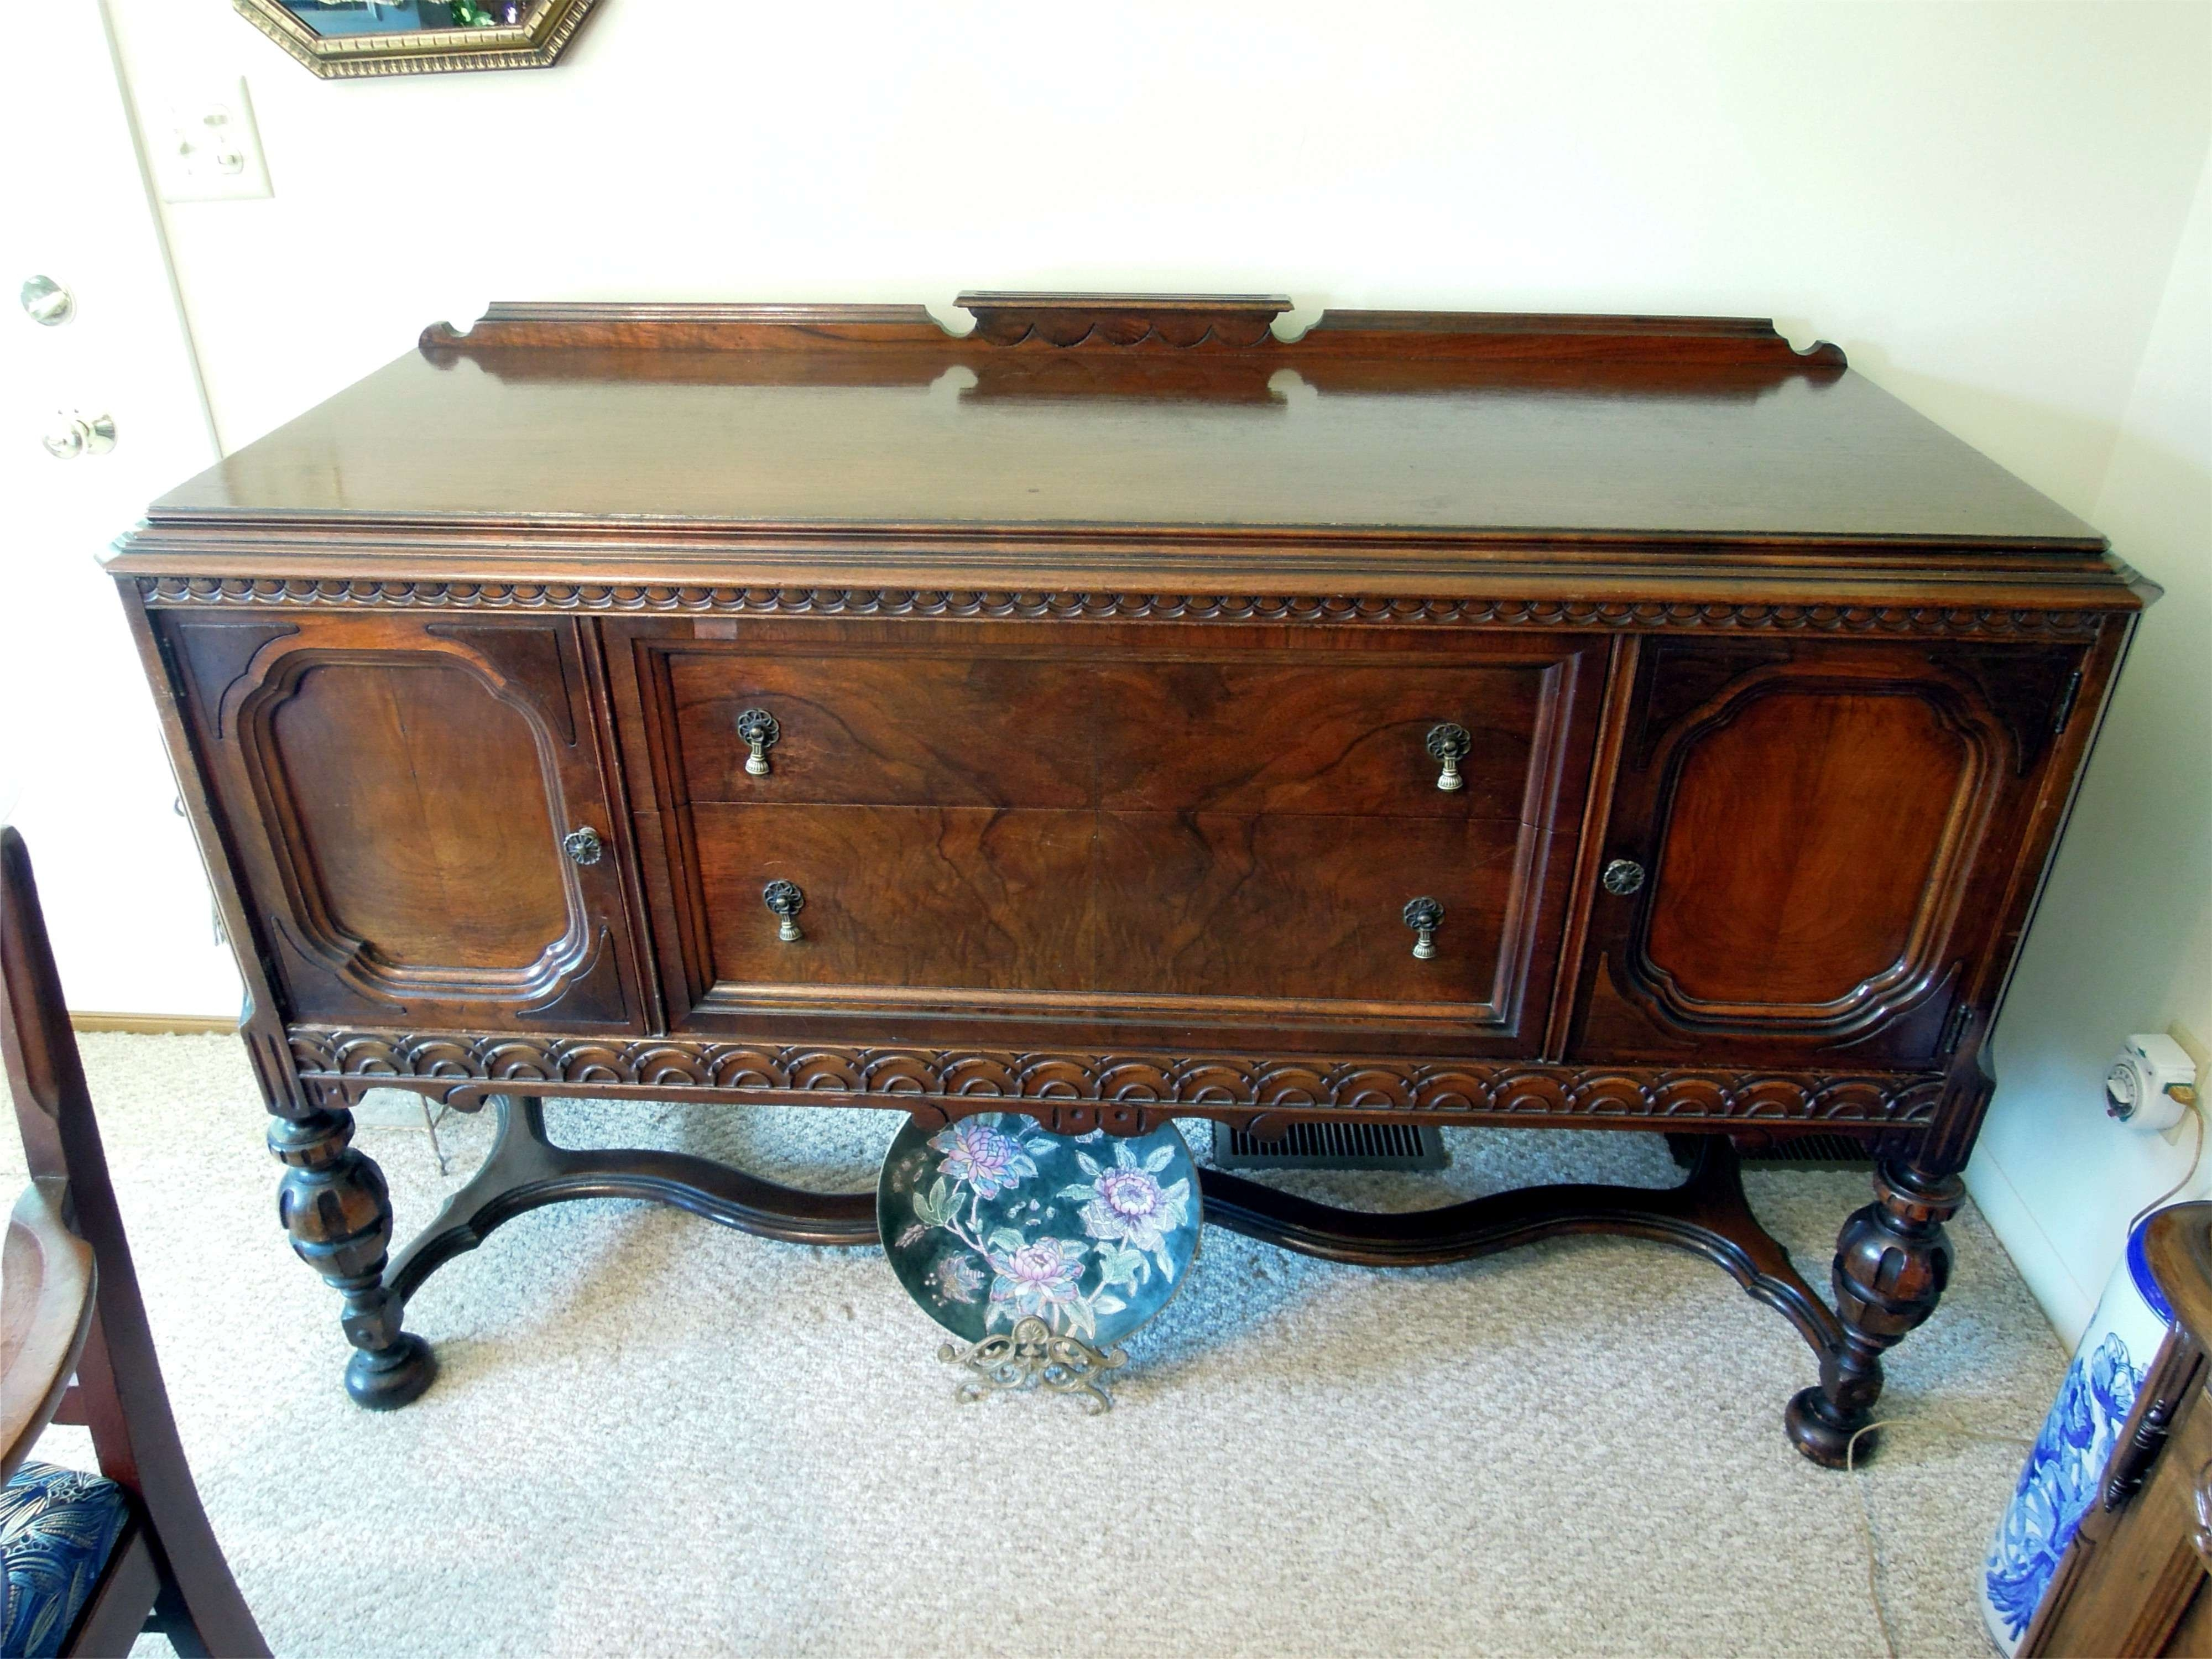 Antique Buffet Sideboard Elegant And Furniture Cozy Fabrica Carpet Throughout Antique Buffet Sideboards (View 7 of 20)